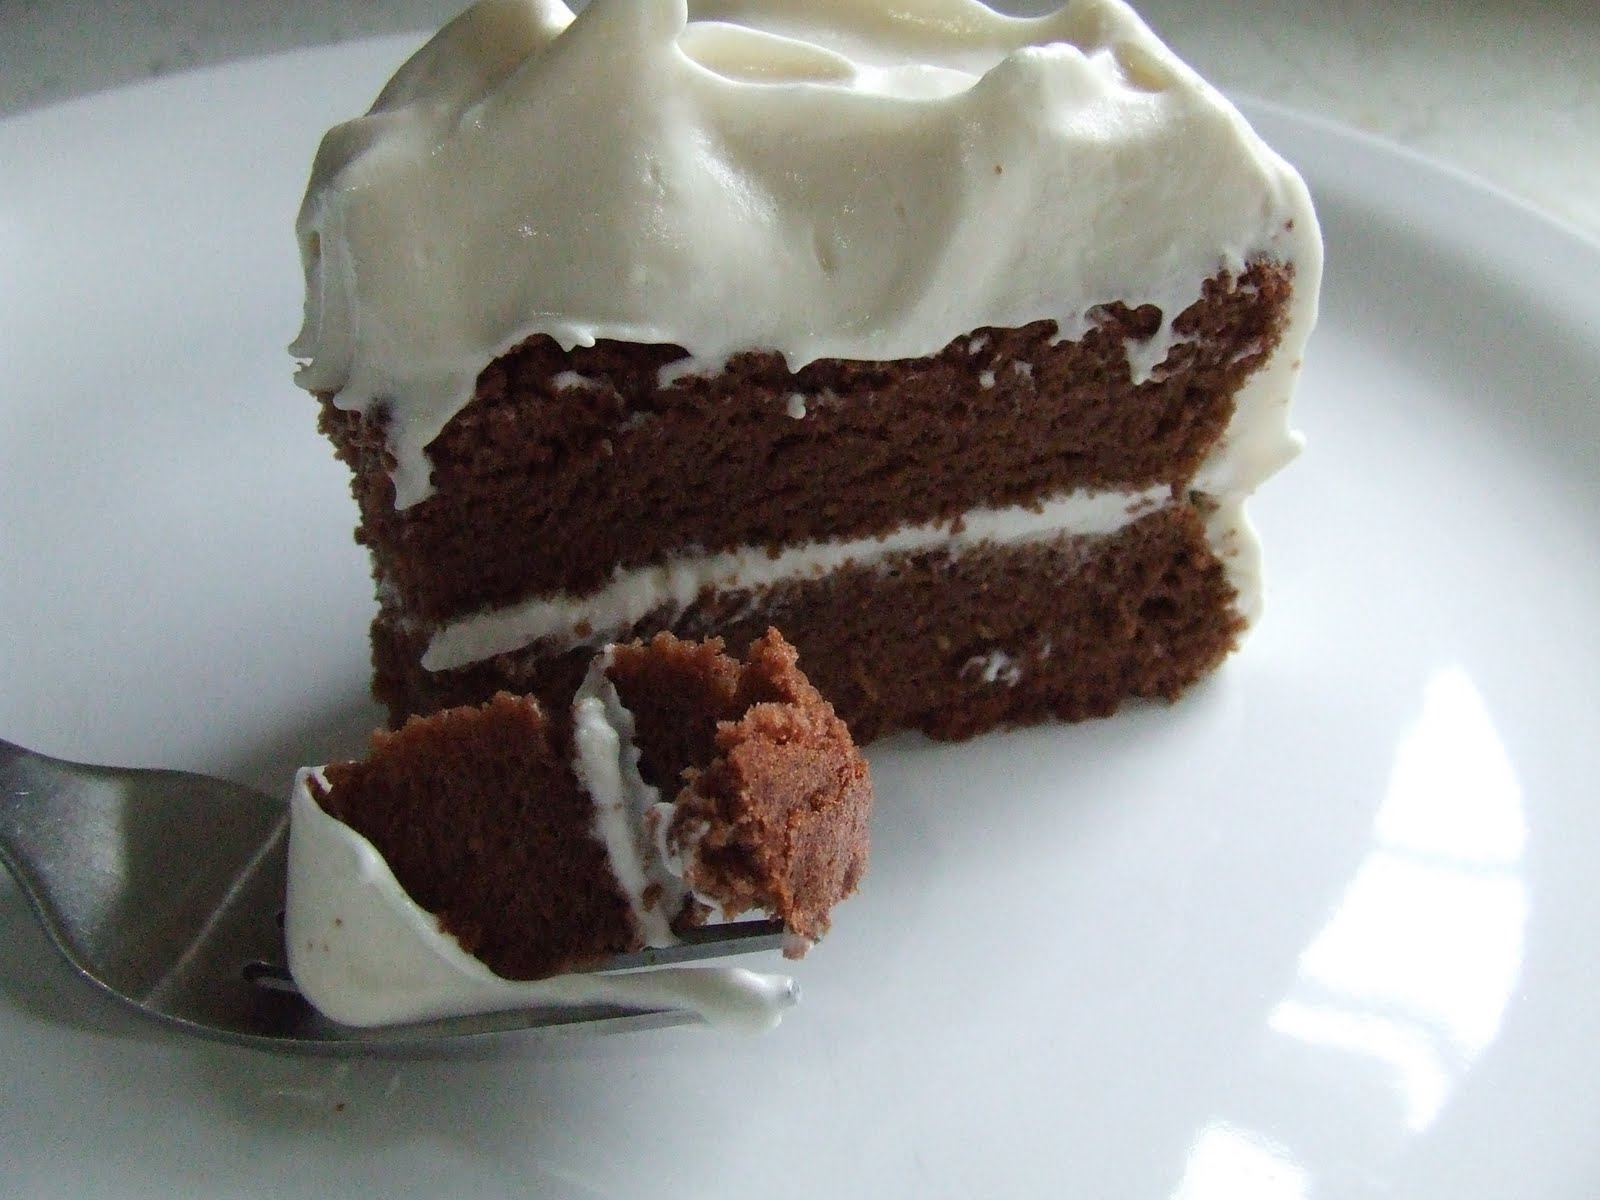 Egg White Cake Icing Recipes: Dairy, Soy, And Refined Sugar Free